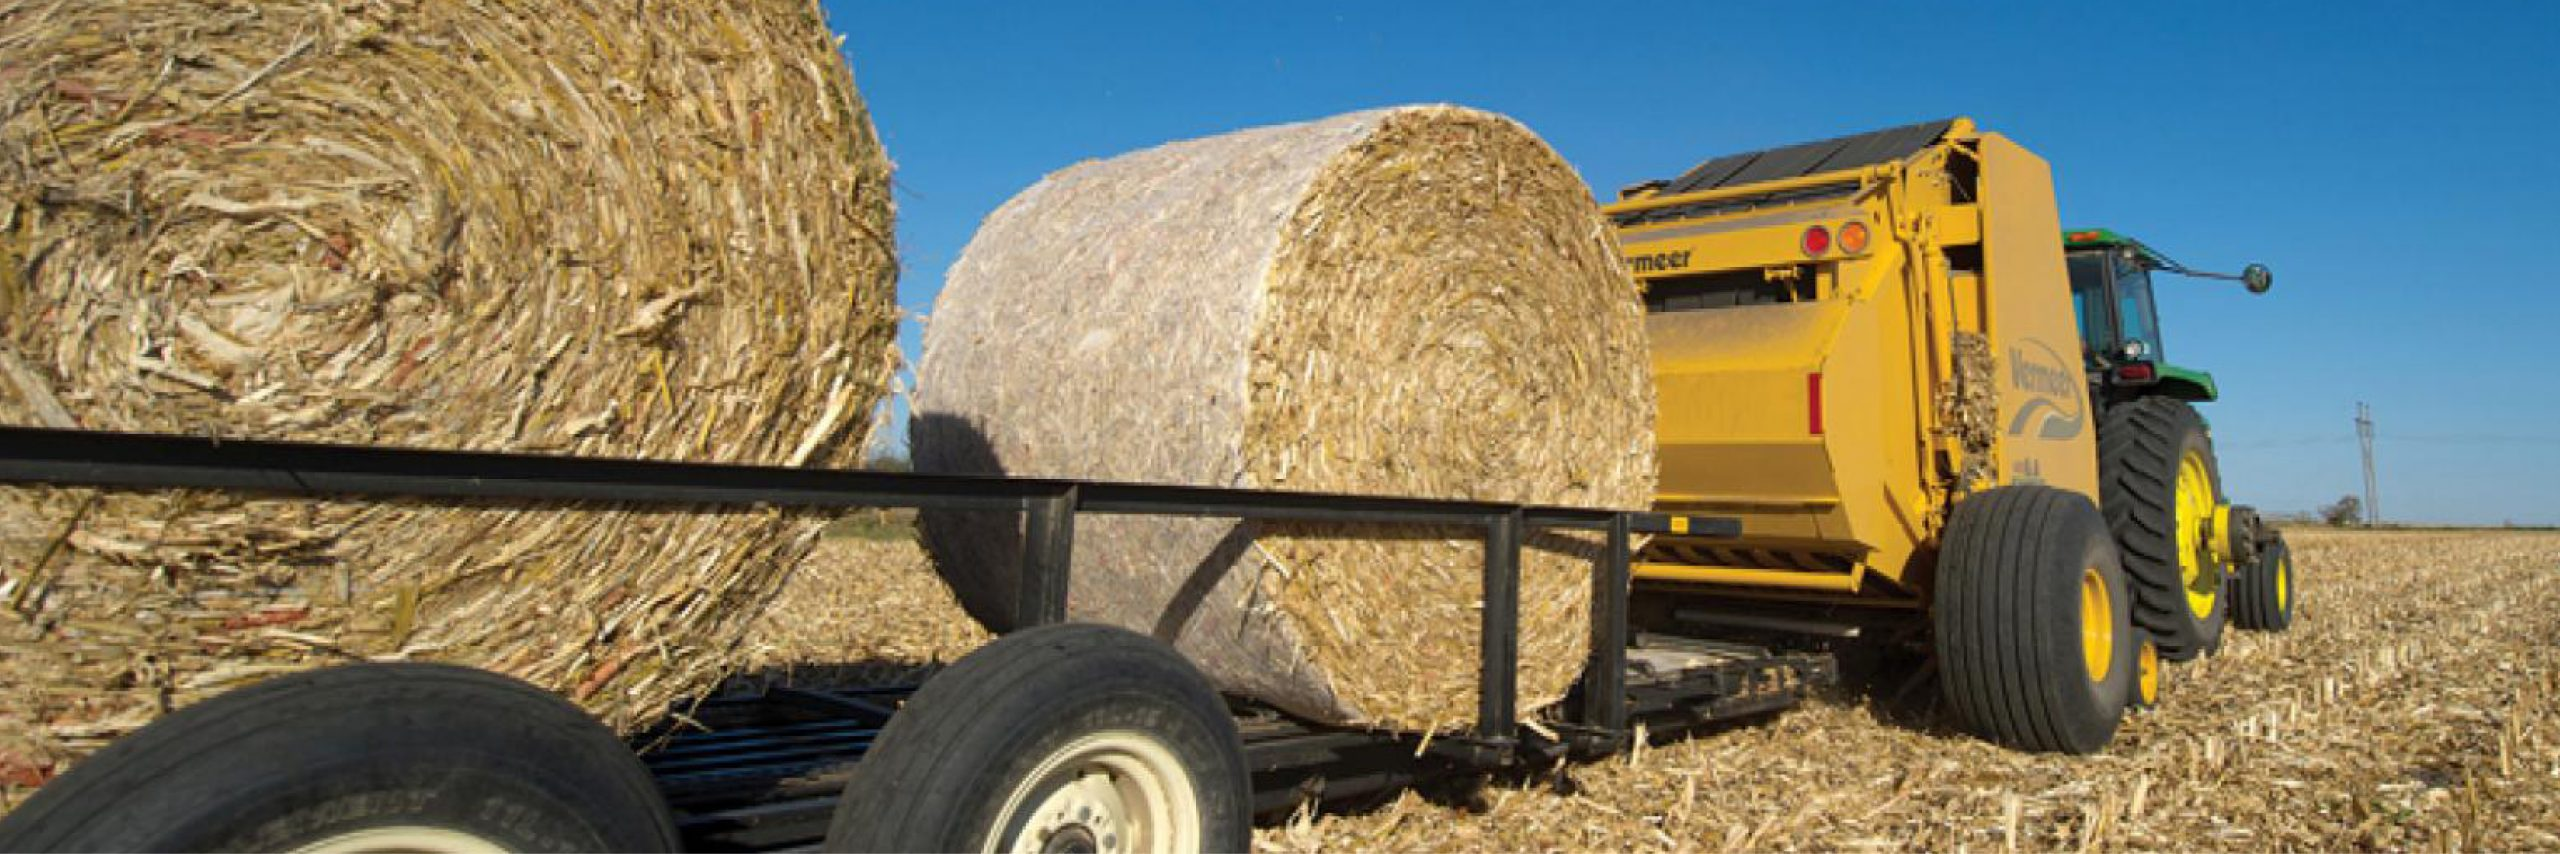 Sustainably Harvesting Corn Stover